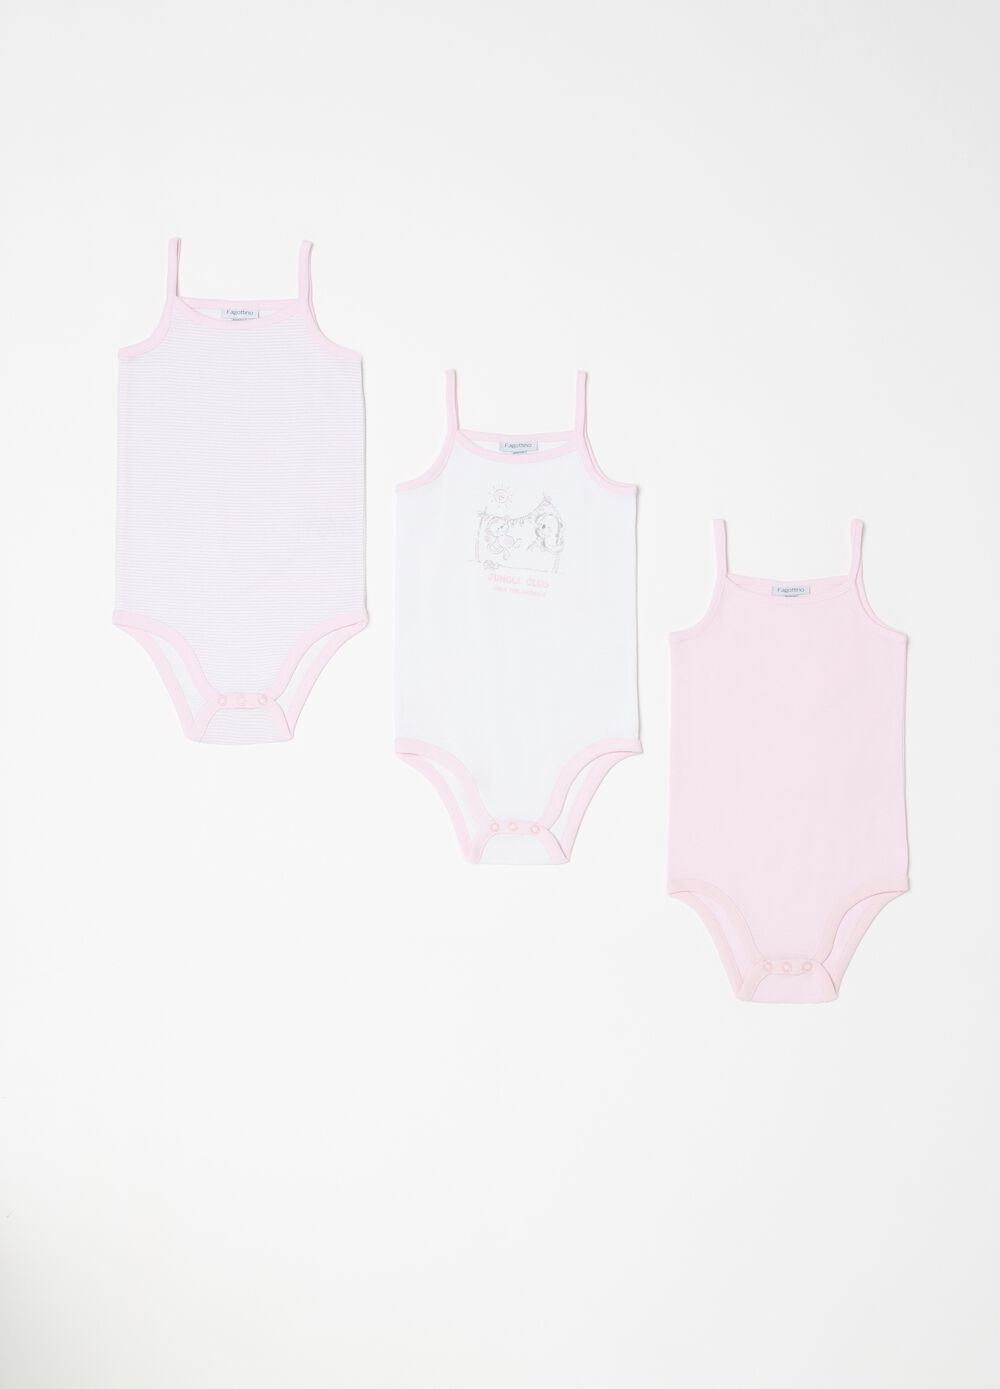 Three-pack sleeveless bodysuits in 100% cotton